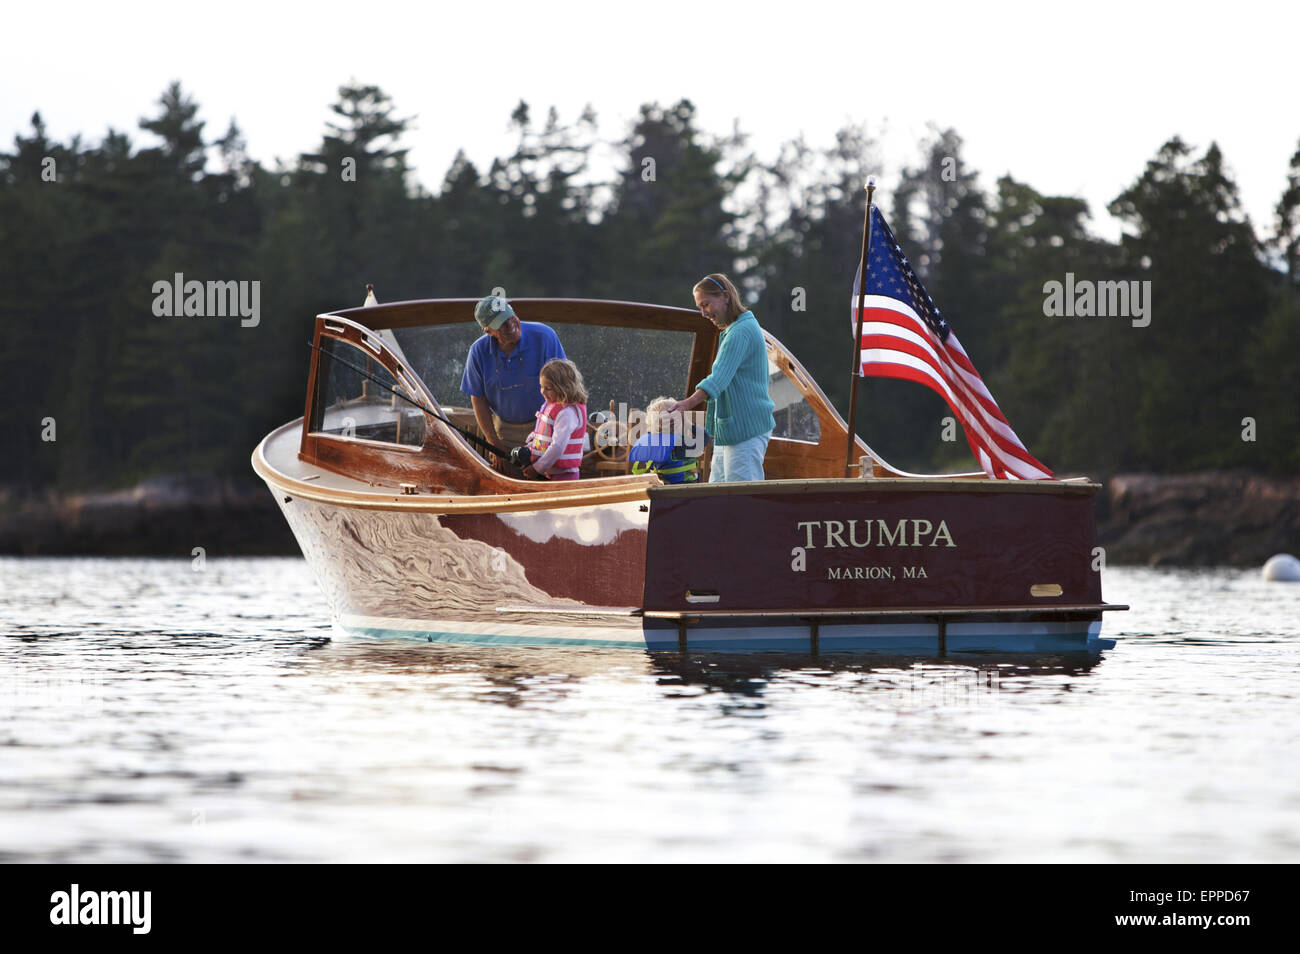 Senior man drives a power yacht in Somes Sound, Maine. - Stock Image